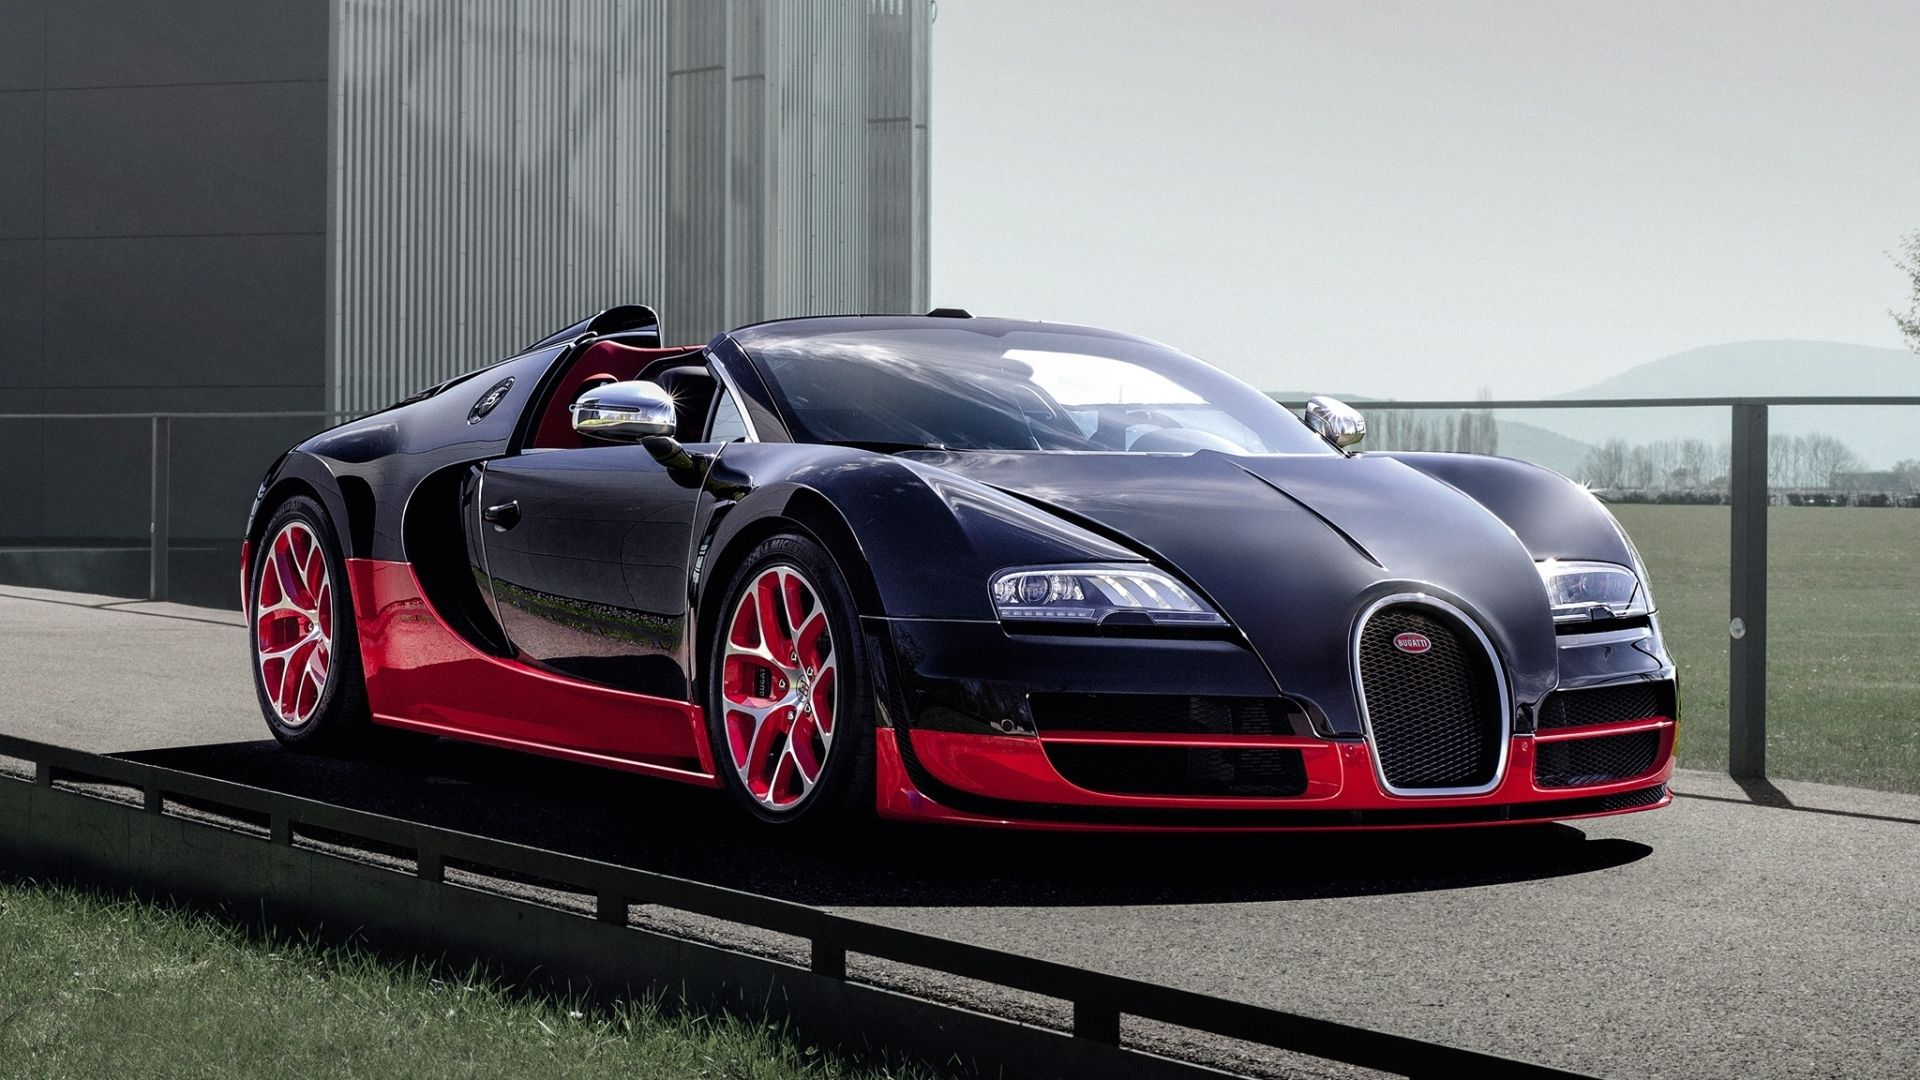 bb449dc91b15abd41b7267df3f4d1b81 Amazing Price Of Bugatti Veyron 16.4 Grand Sport Vitesse In Real Racing 3 Cars Trend